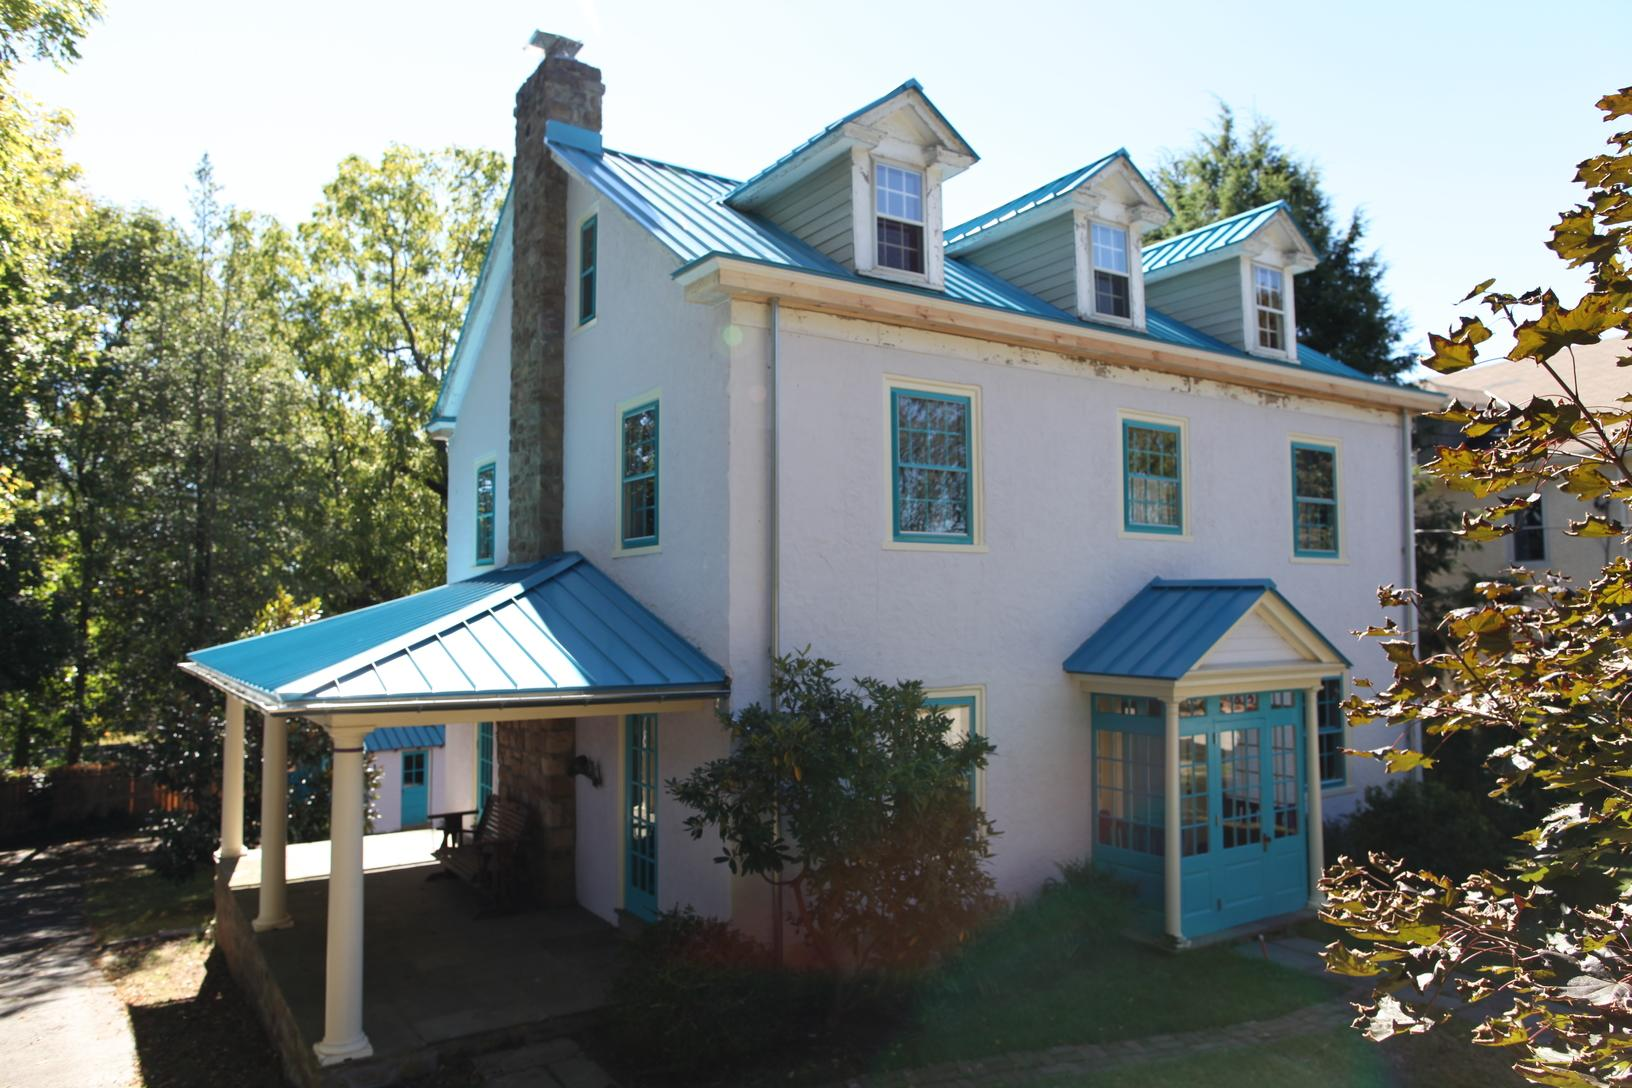 Replacing Old Slate and Asphalt Roof with Standing Seam Metal Roof in Ambler, PA - After Photo